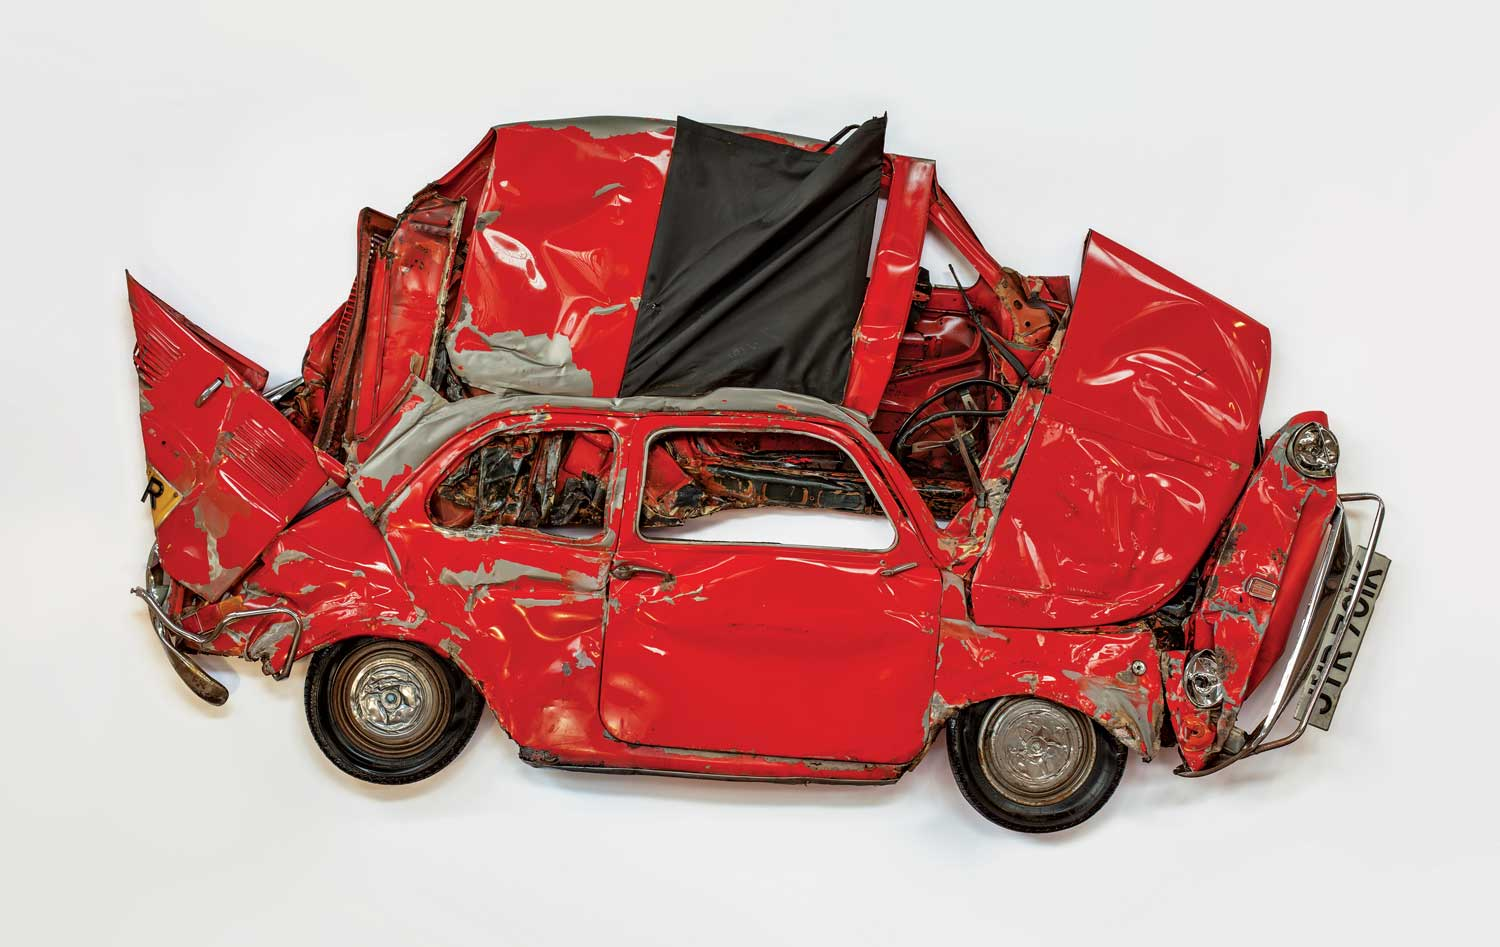 Ron Arad's Red Flattened Fiat Car Sculpture